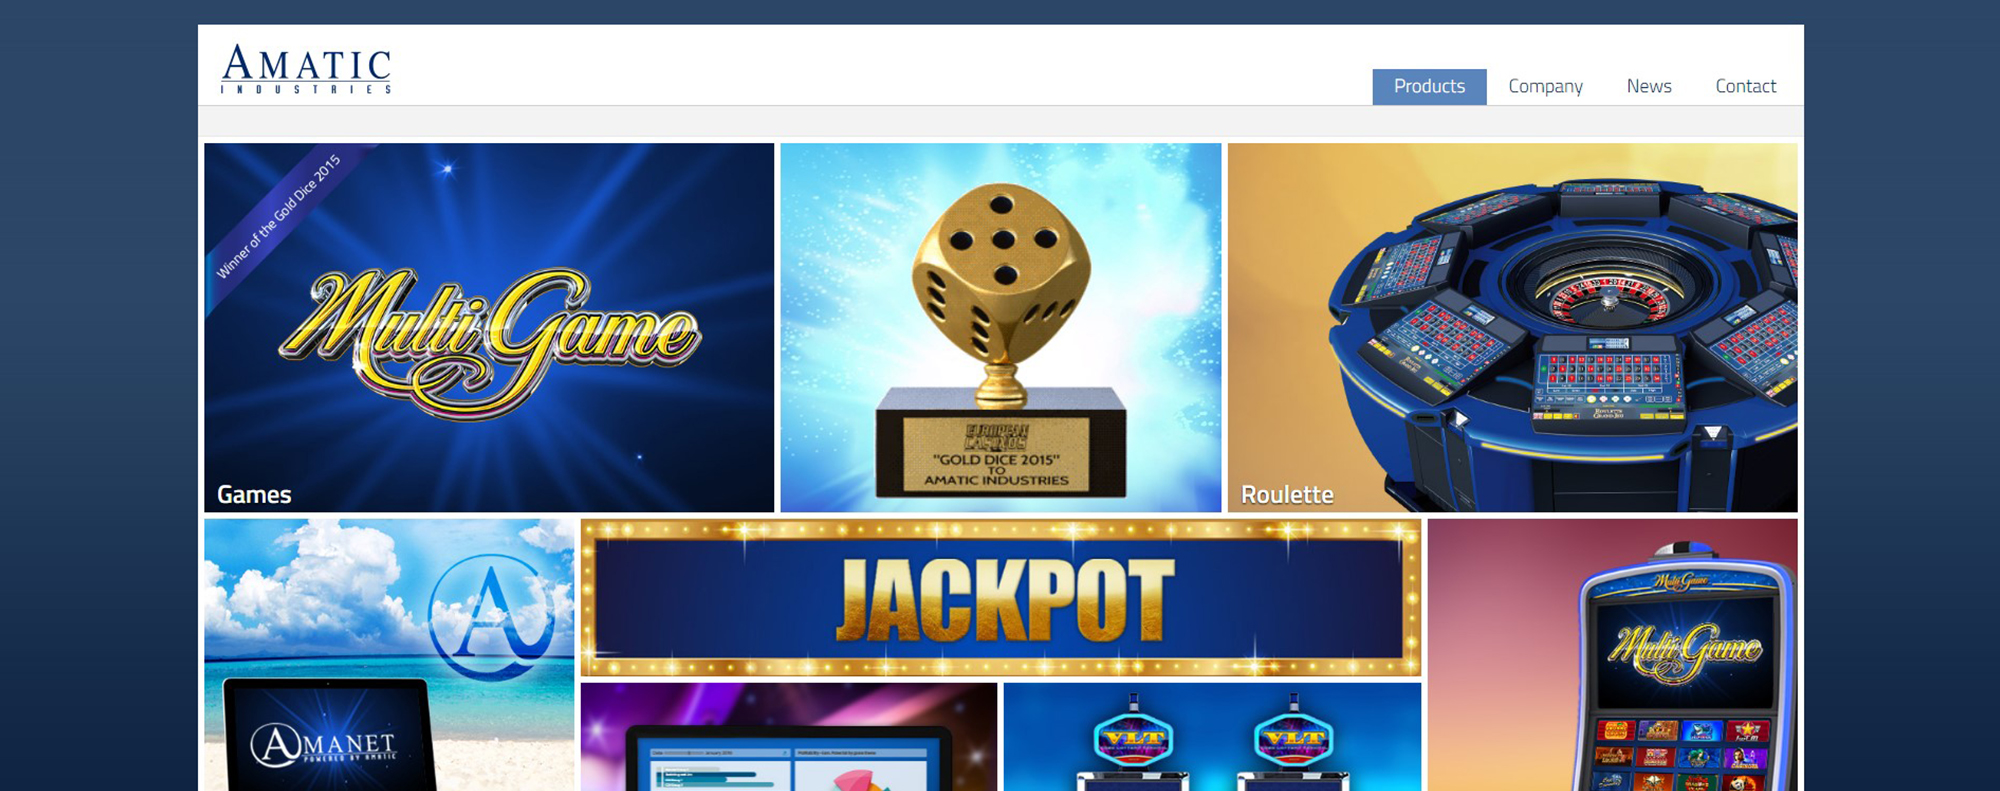 amatic at an online casino